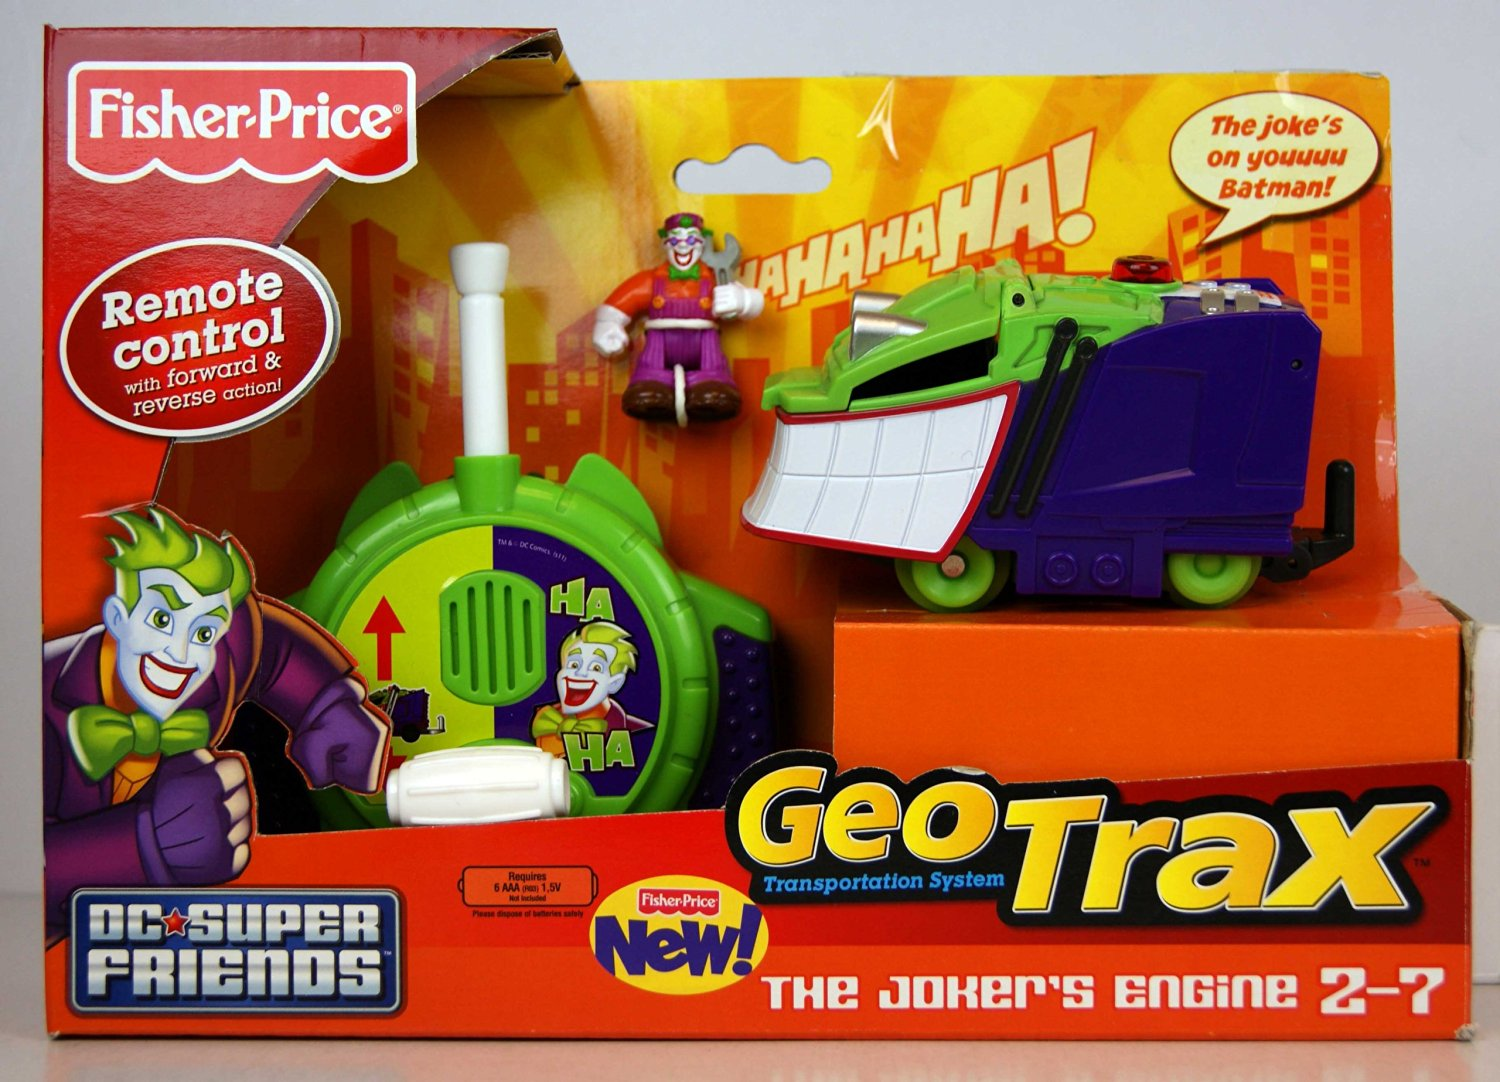 Fisher-Price GeoTrax DC Super Friends Turbo Remote Control Vehicle - The Jokers Engine